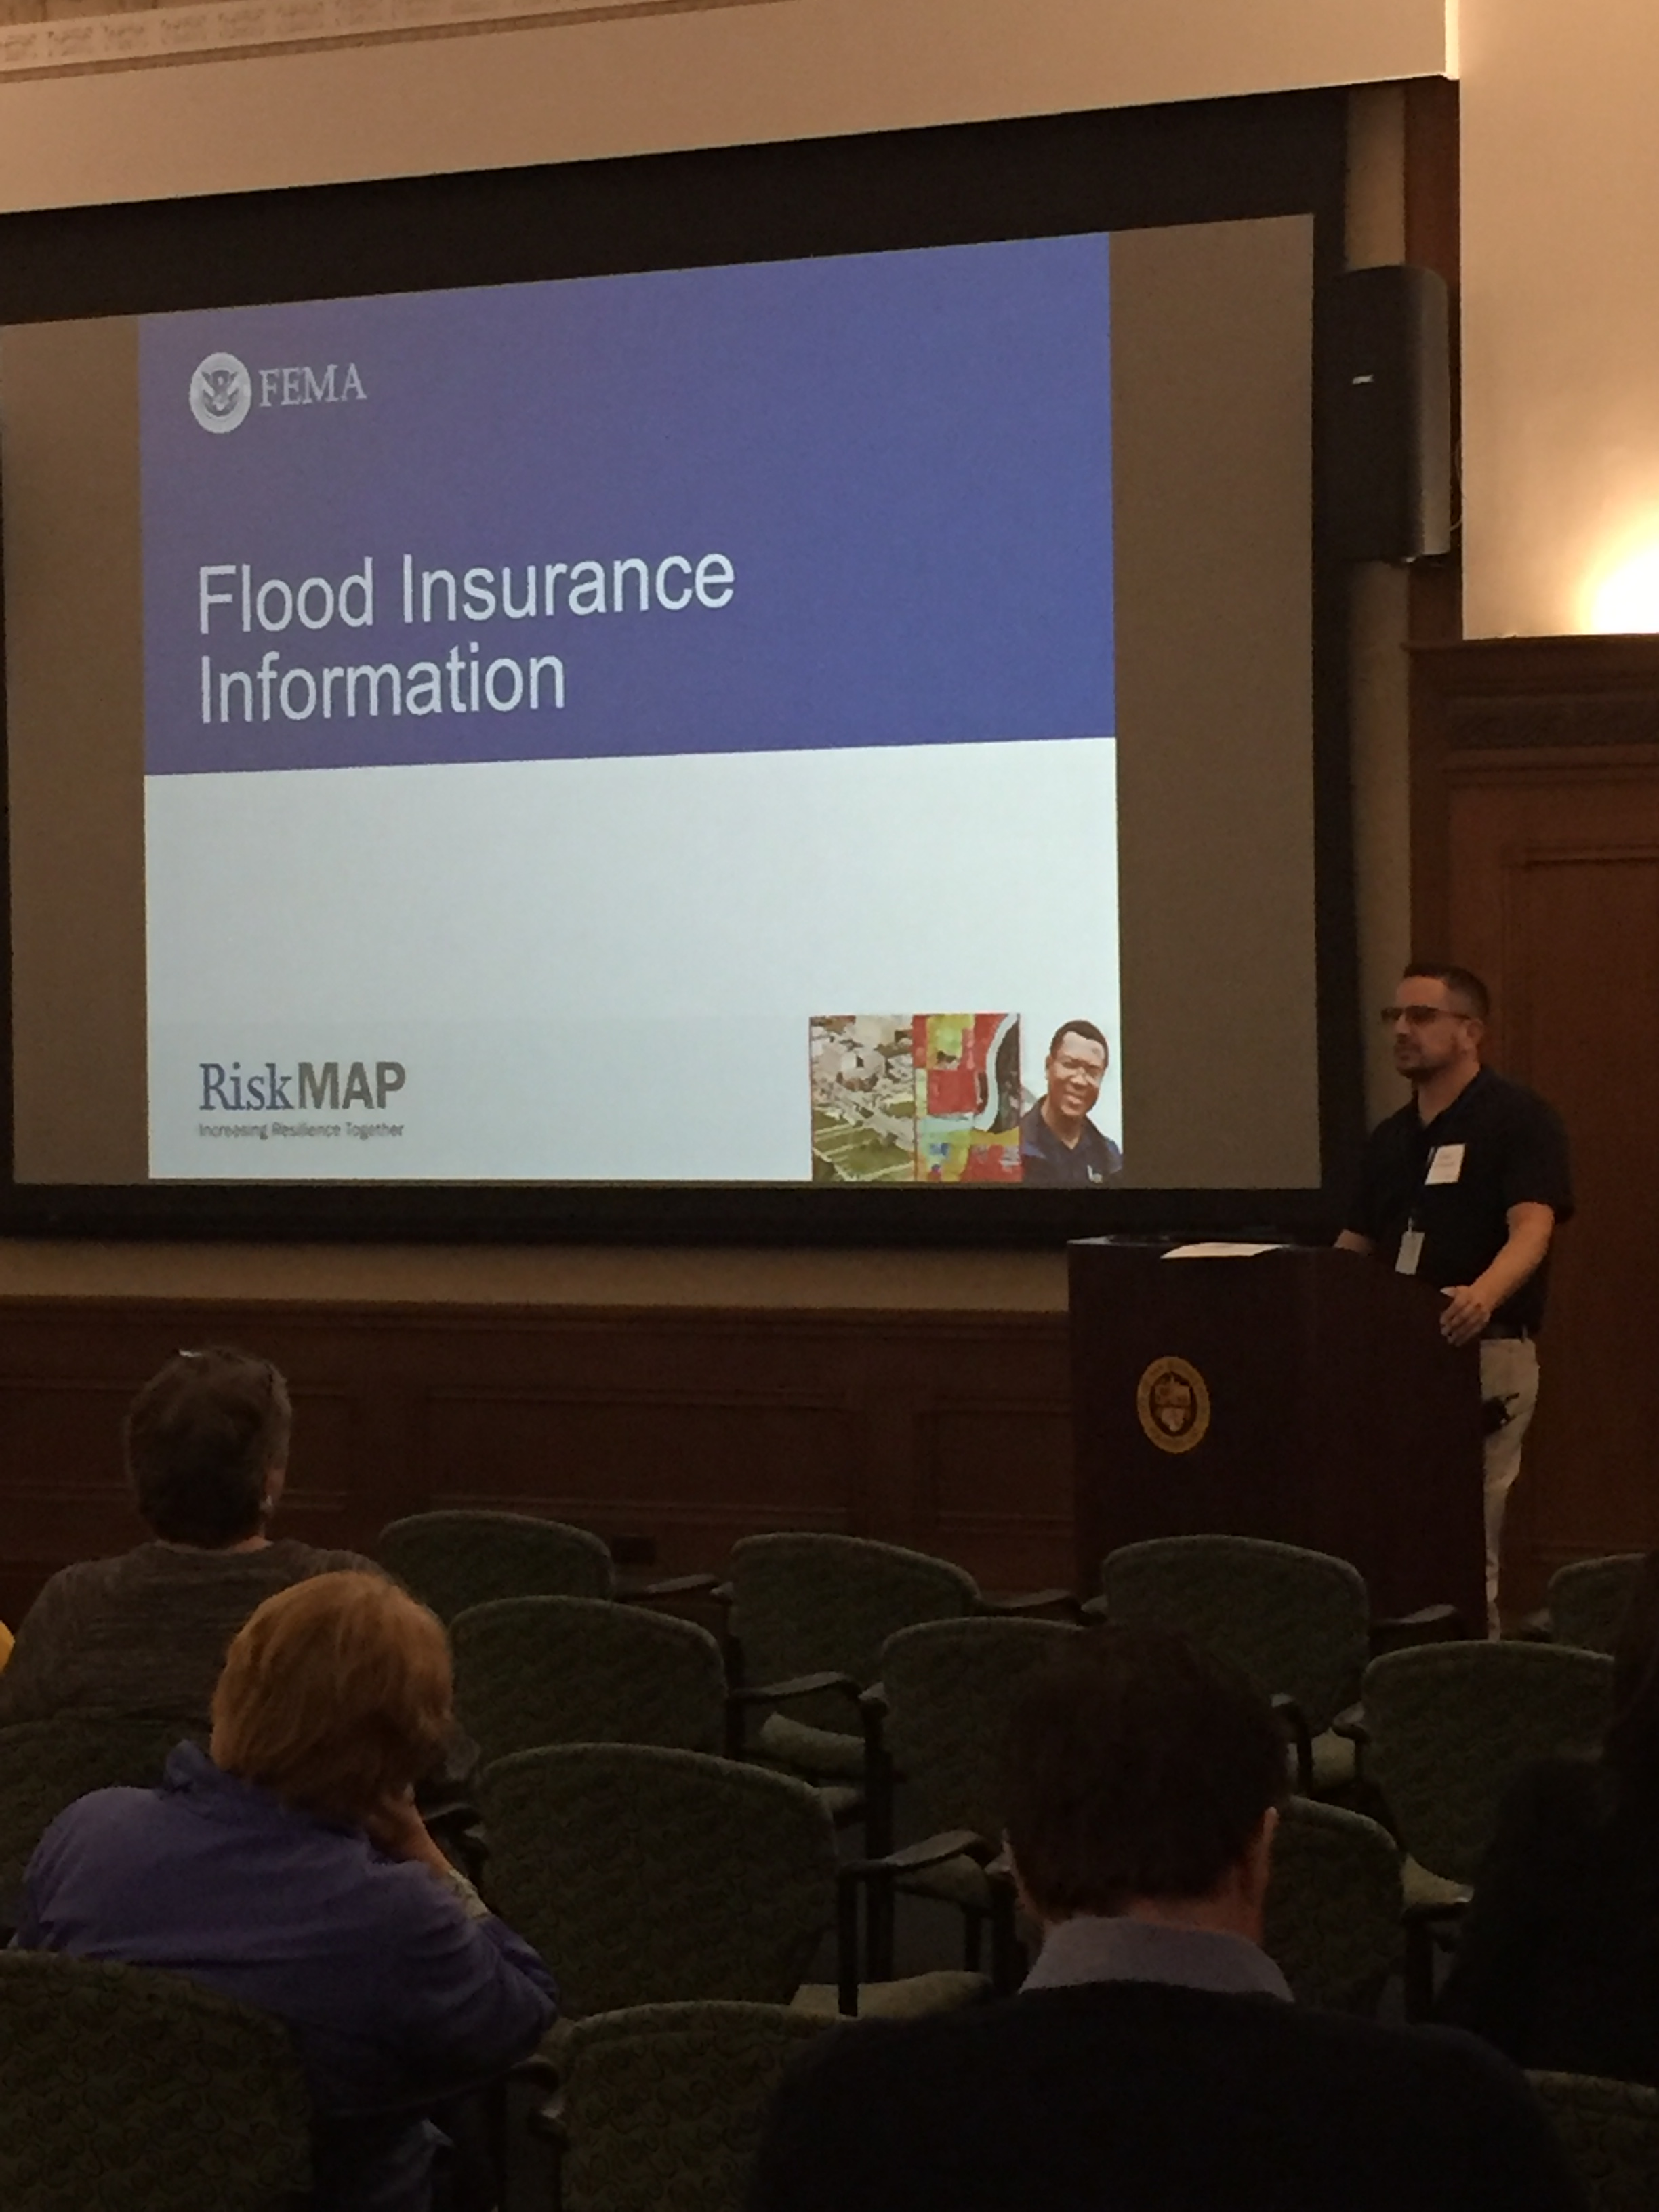 FEMA Presentation on Flood Insurance